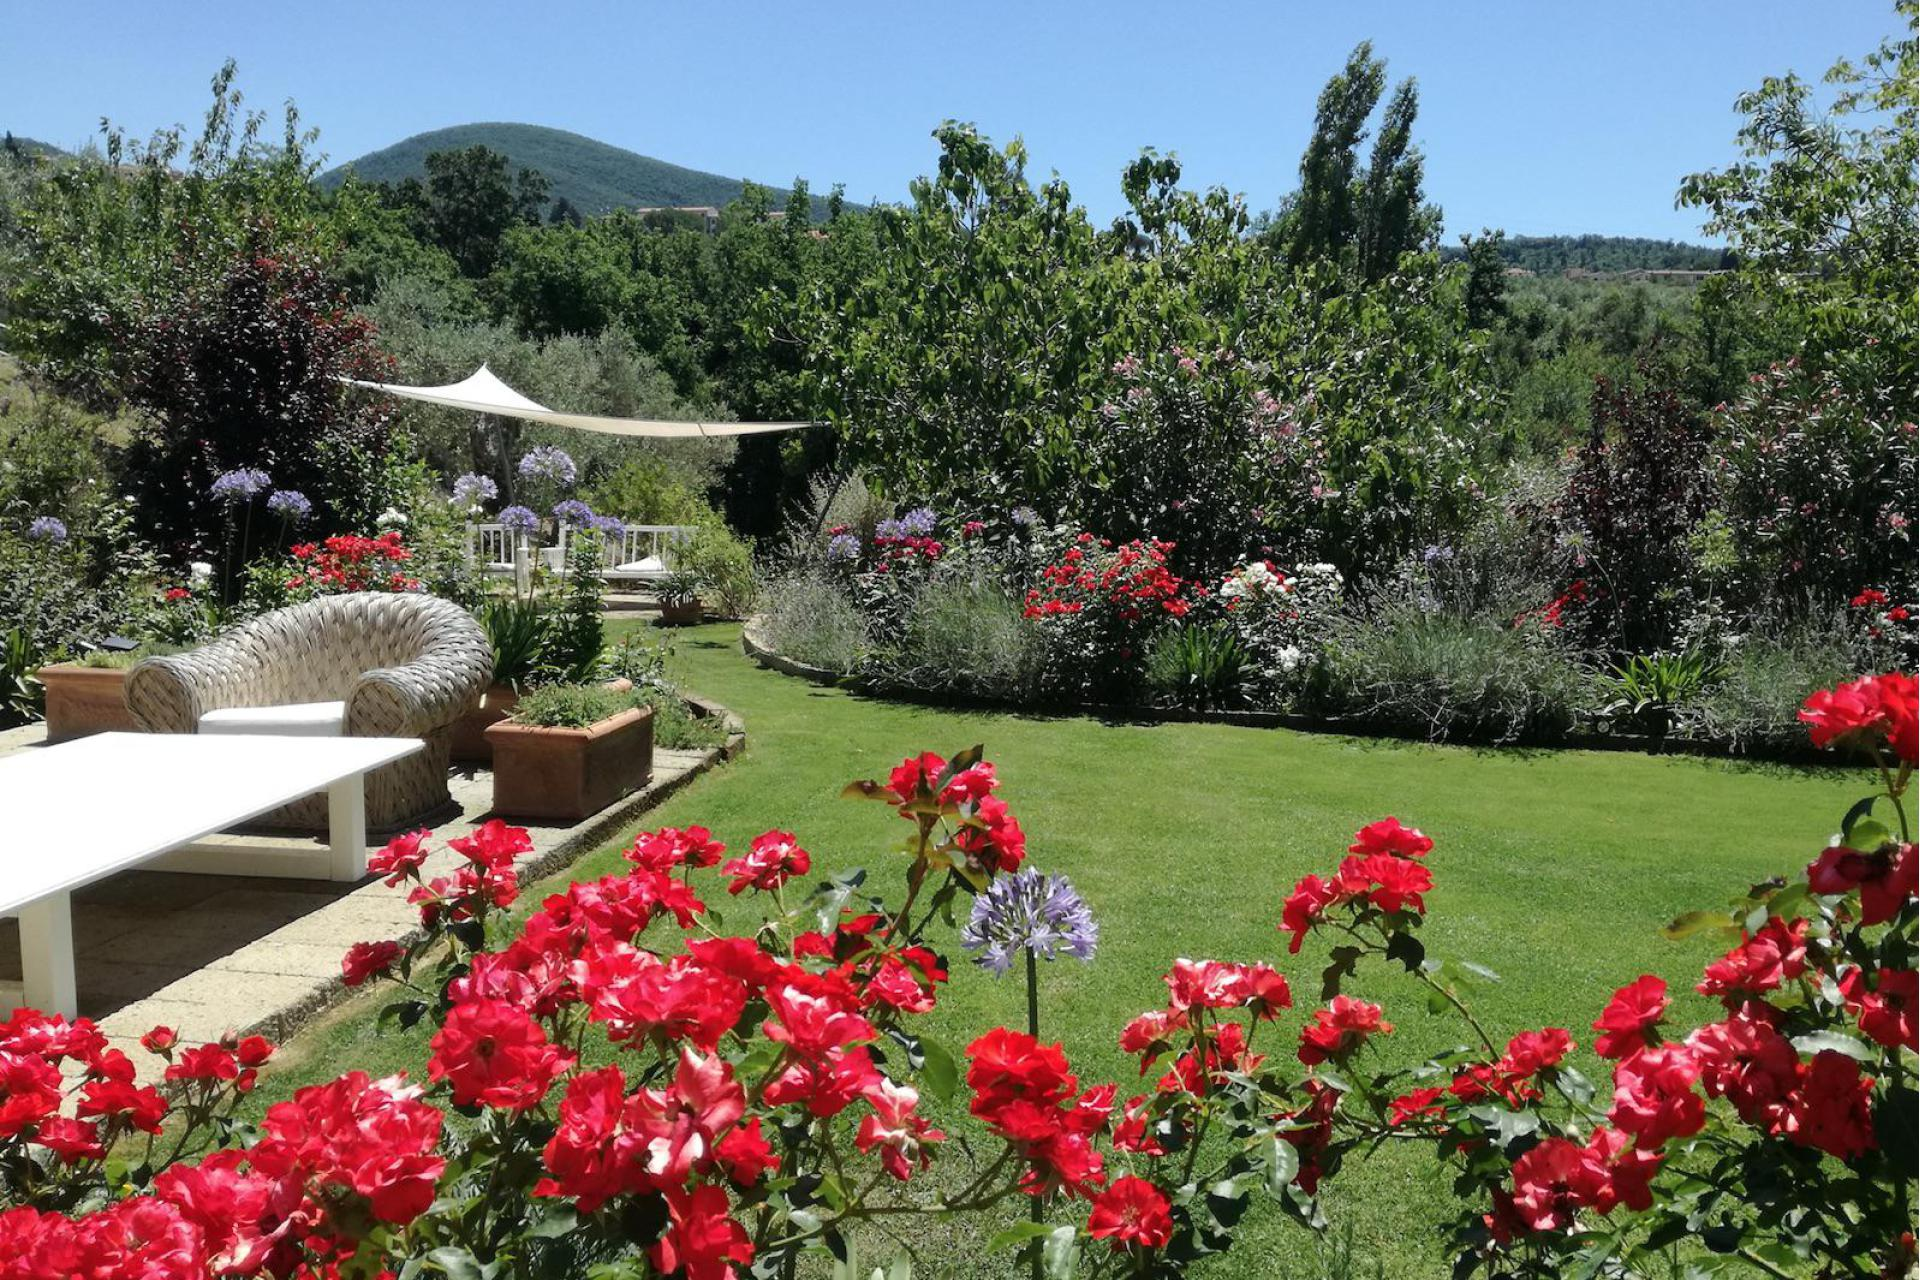 Agriturismo Tuscany Small organic holiday farm in the Tuscan hills